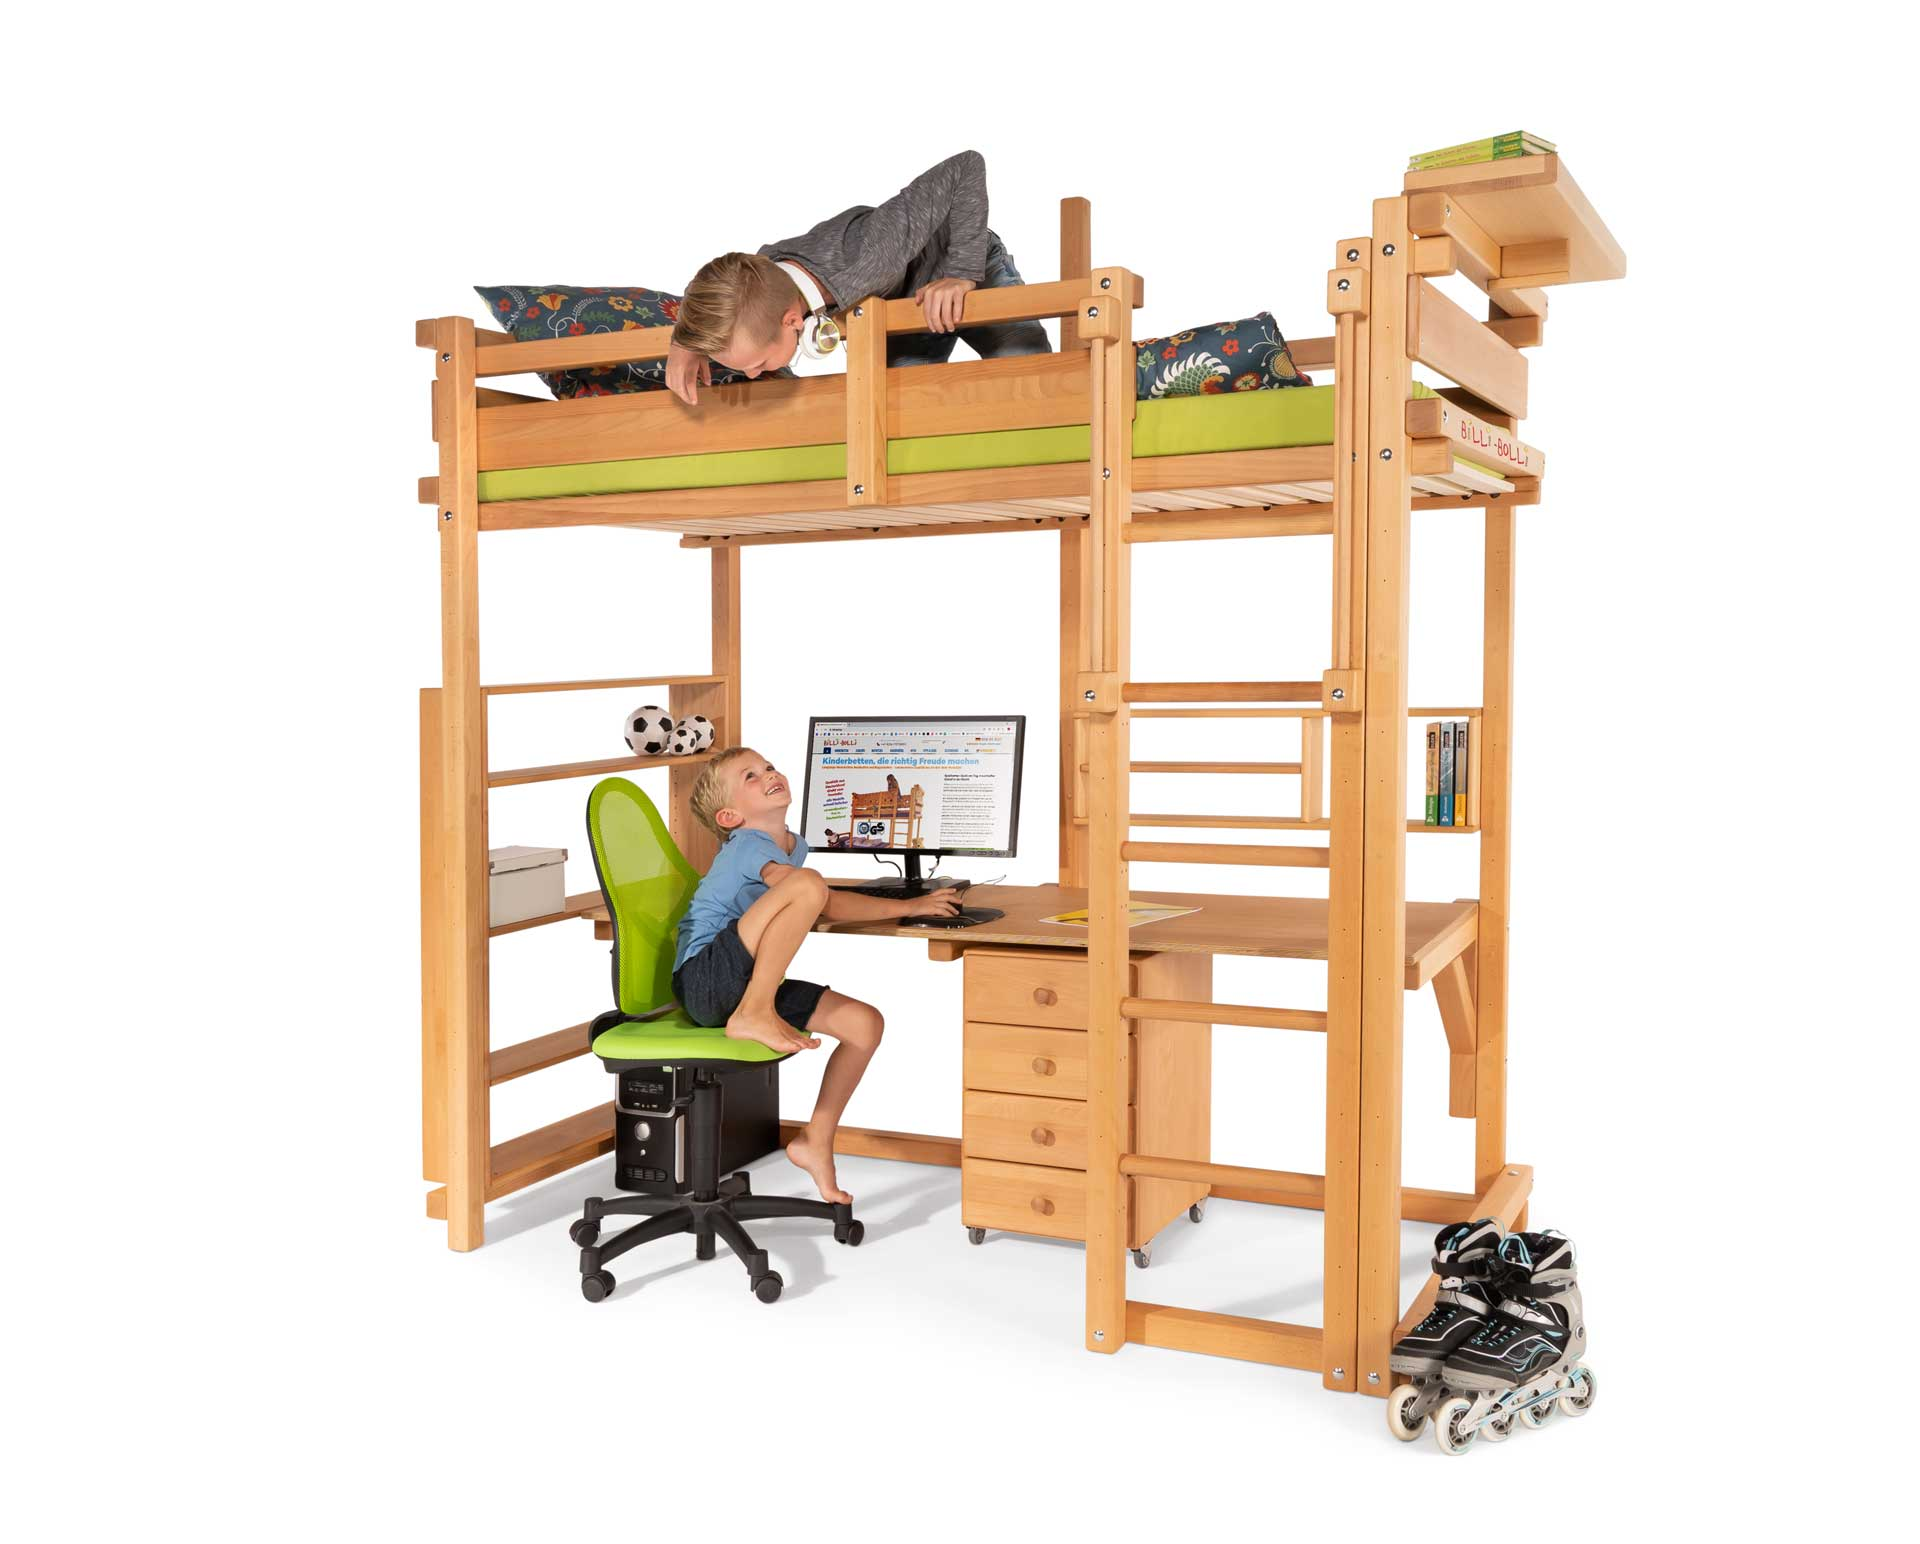 The Loft Bed Adjustable by Age in beech, assembled at height 6. Pictured with Bedside Table, Large and Small Bed Shelf, Desktop, Mobile File Pedestal, kids' swivel chair Airgo Kid and mattress Nele Plus.